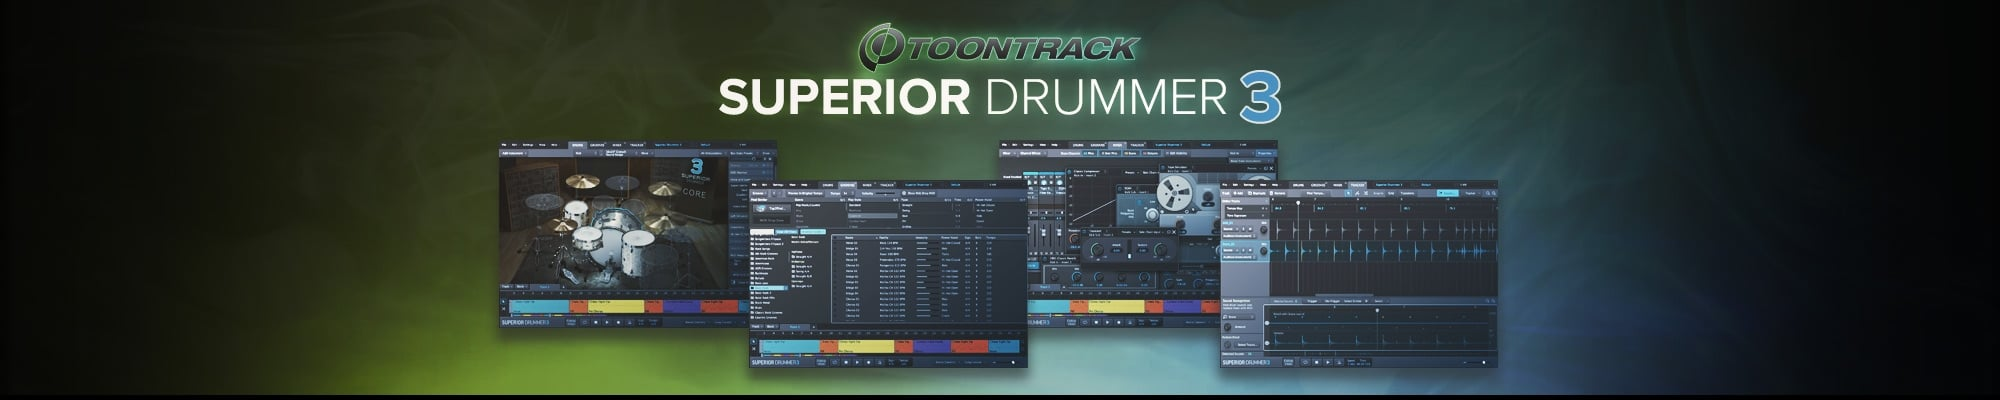 Superior Drummer 3 - Available September 12th